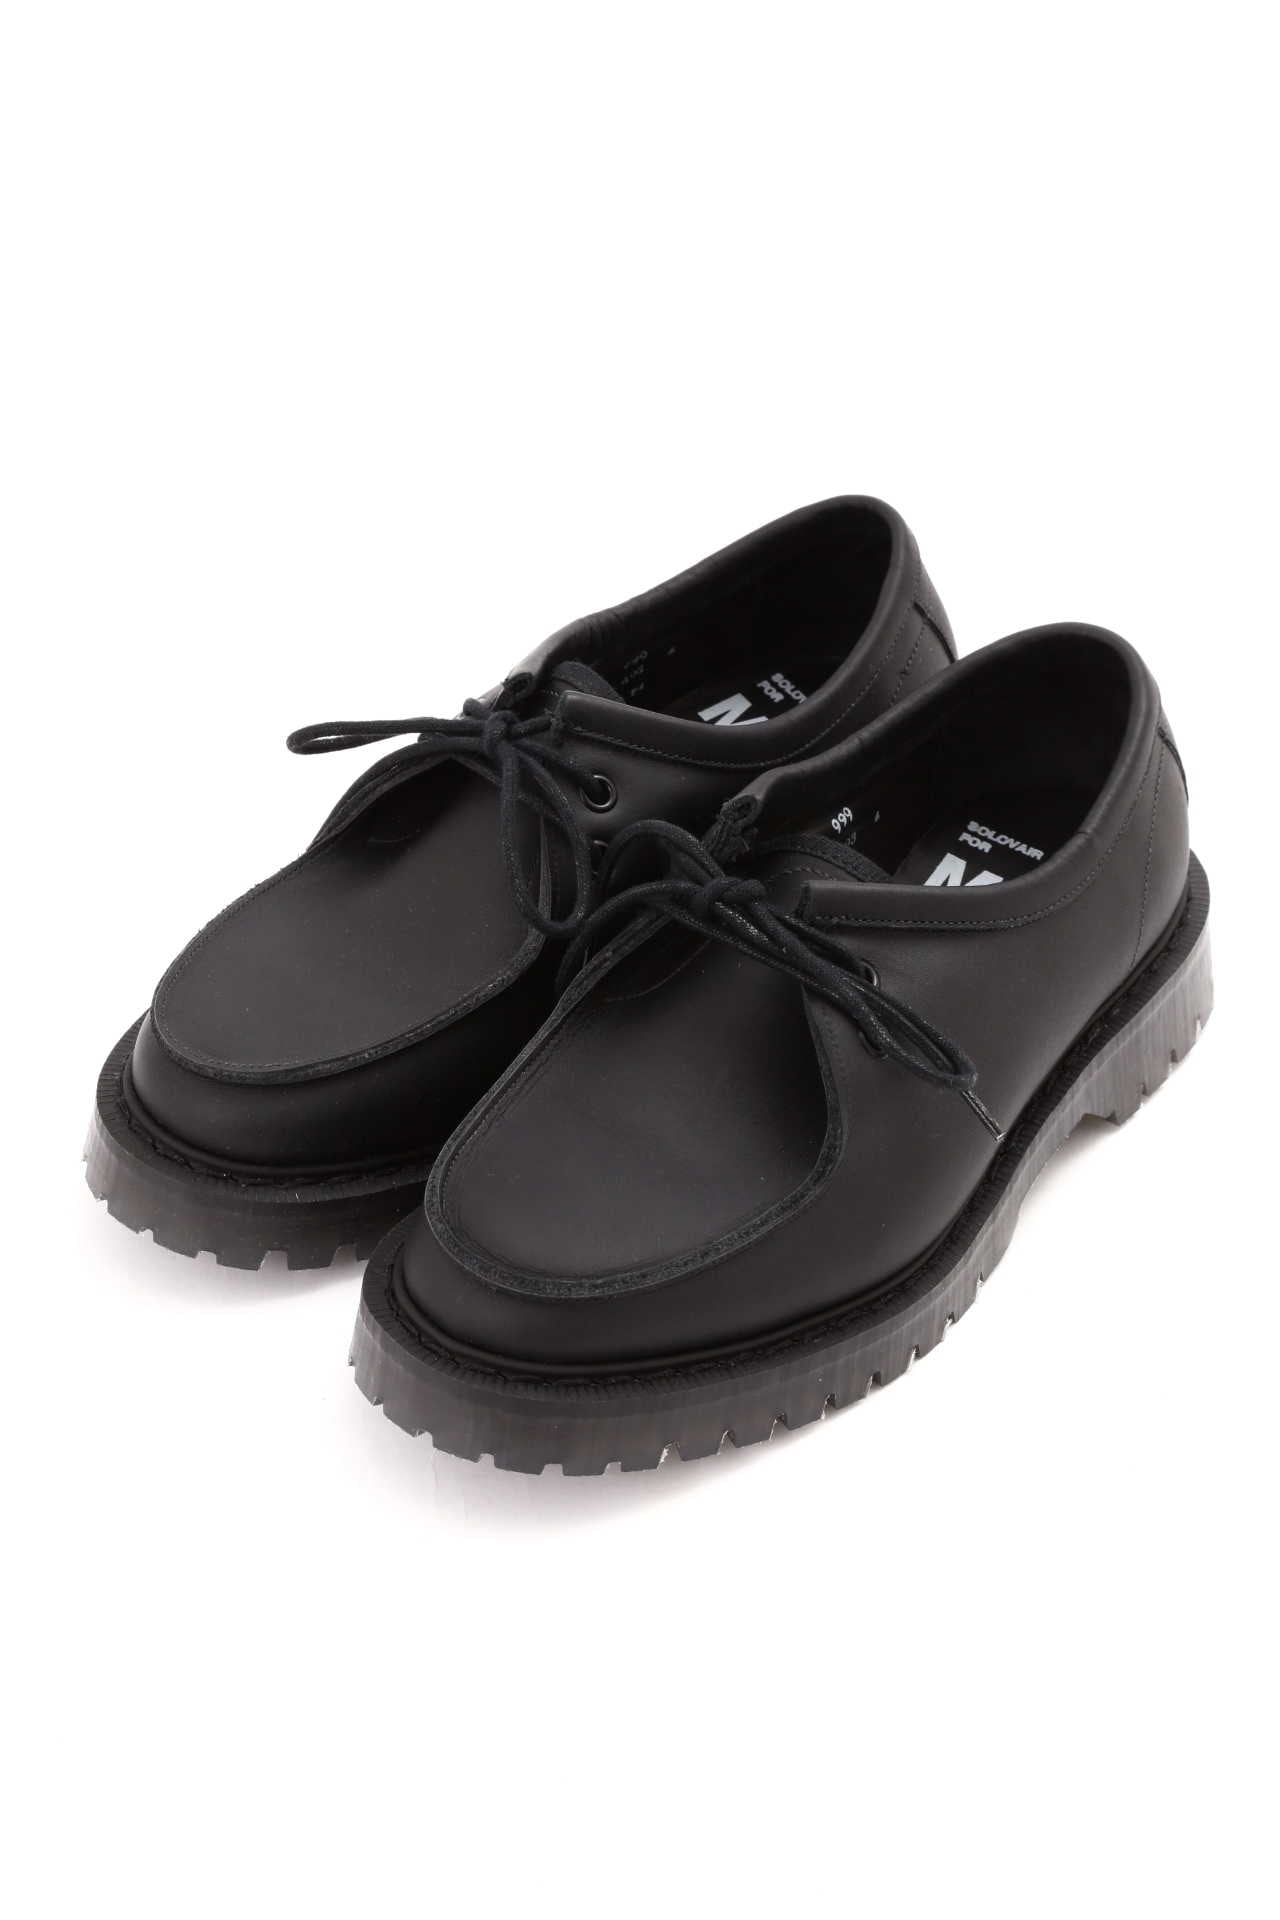 MHL MOCCASIN SHOE(MHL SHOP限定)6